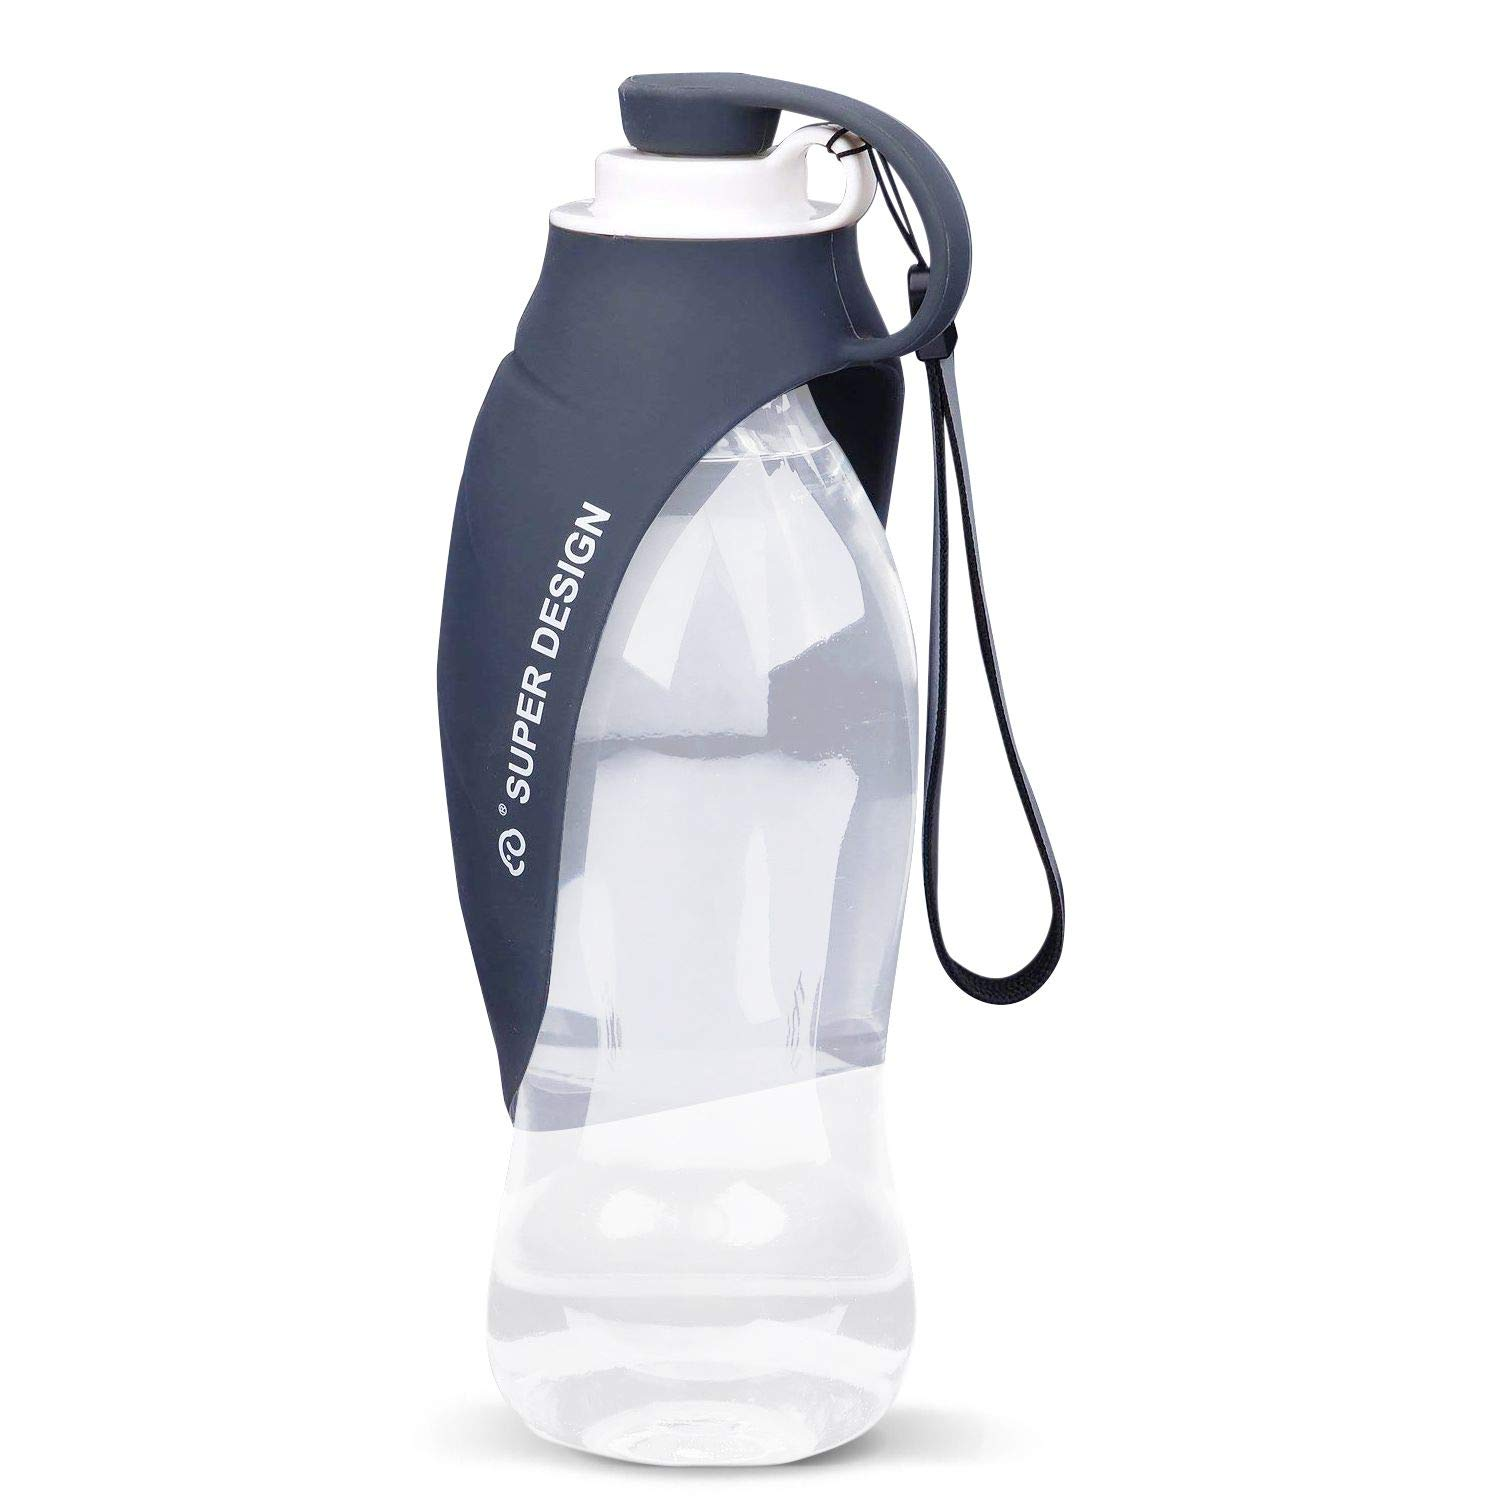 SpeedRobot Portable Dog Water Bottle for Walking - Fashion Antibacterial Leak Proof Food Grade Silicone Dog Travel Water Bottle with Bowl Dispenser Outdoor - 20 Oz (Grey) by SpeedRobot